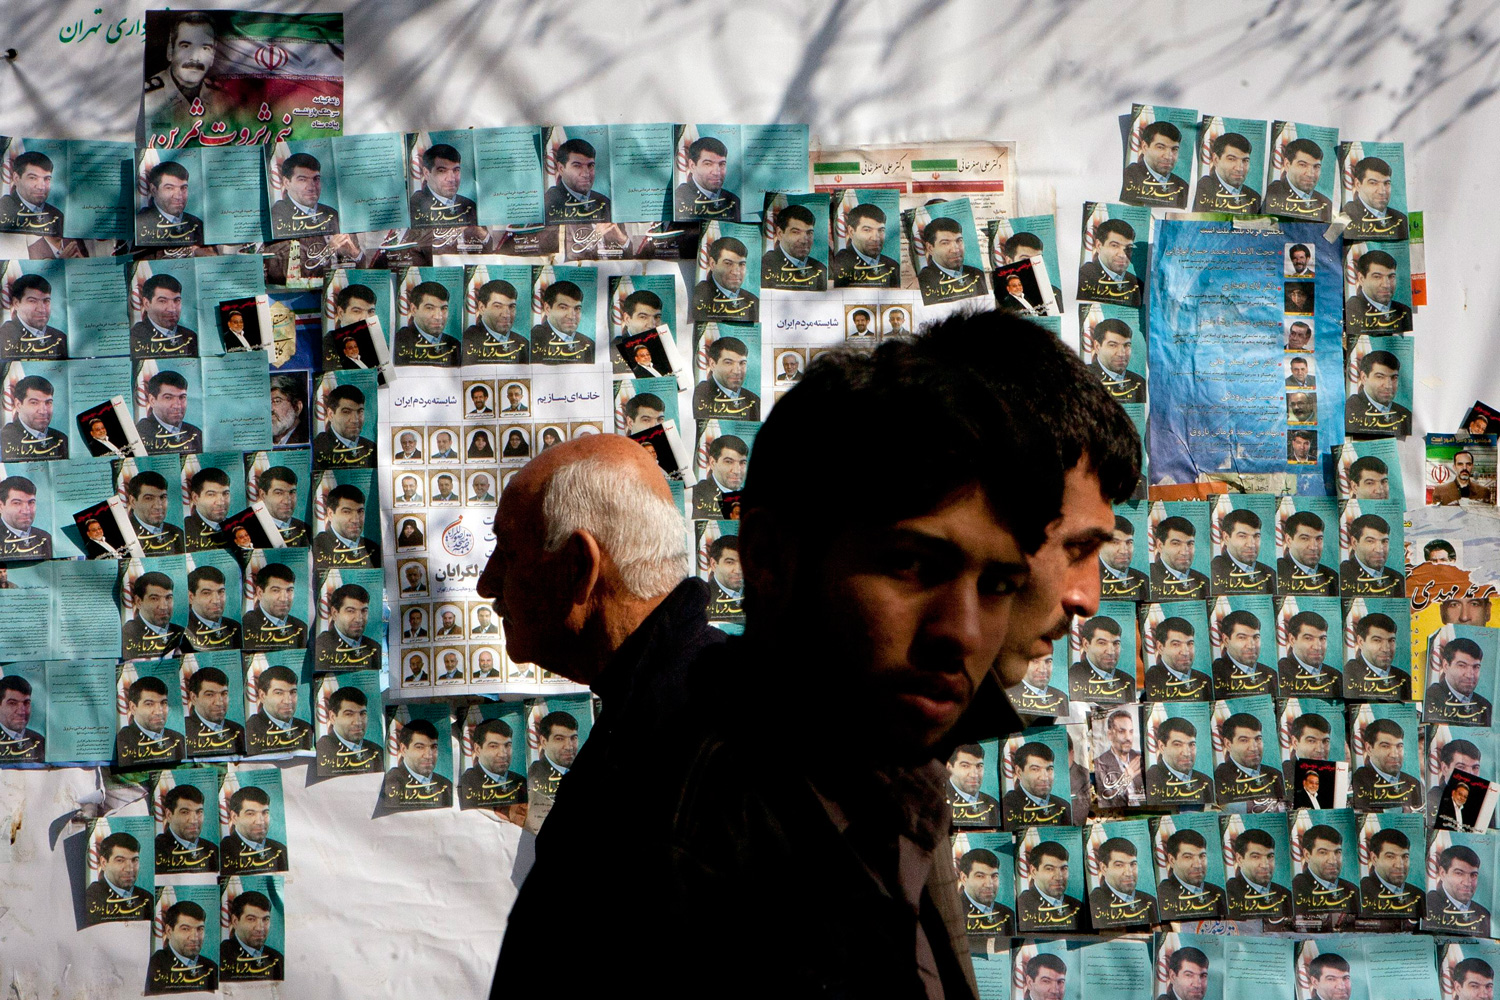 Feb. 28, 2012. Iranians walk past electoral posters for an upcoming parliamentary election on a street in Tehran.